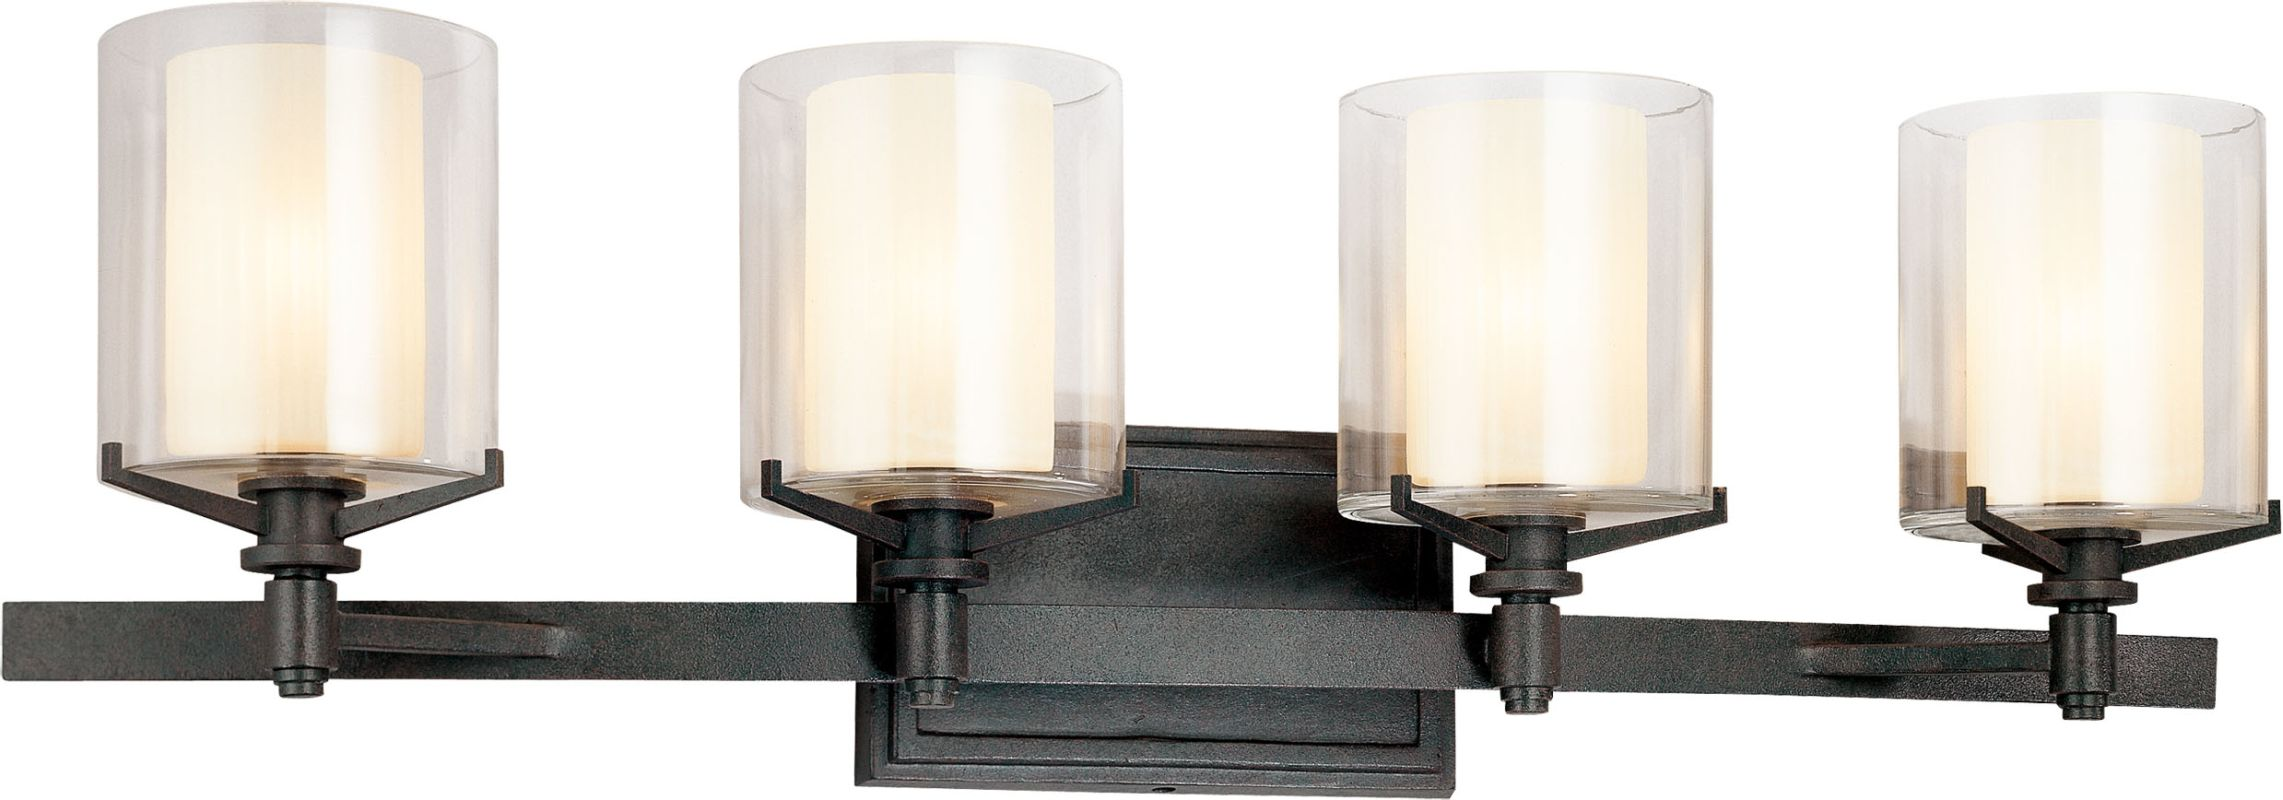 Troy Lighting B1714FR French Iron Contemporary Arcadia Bathroom Light